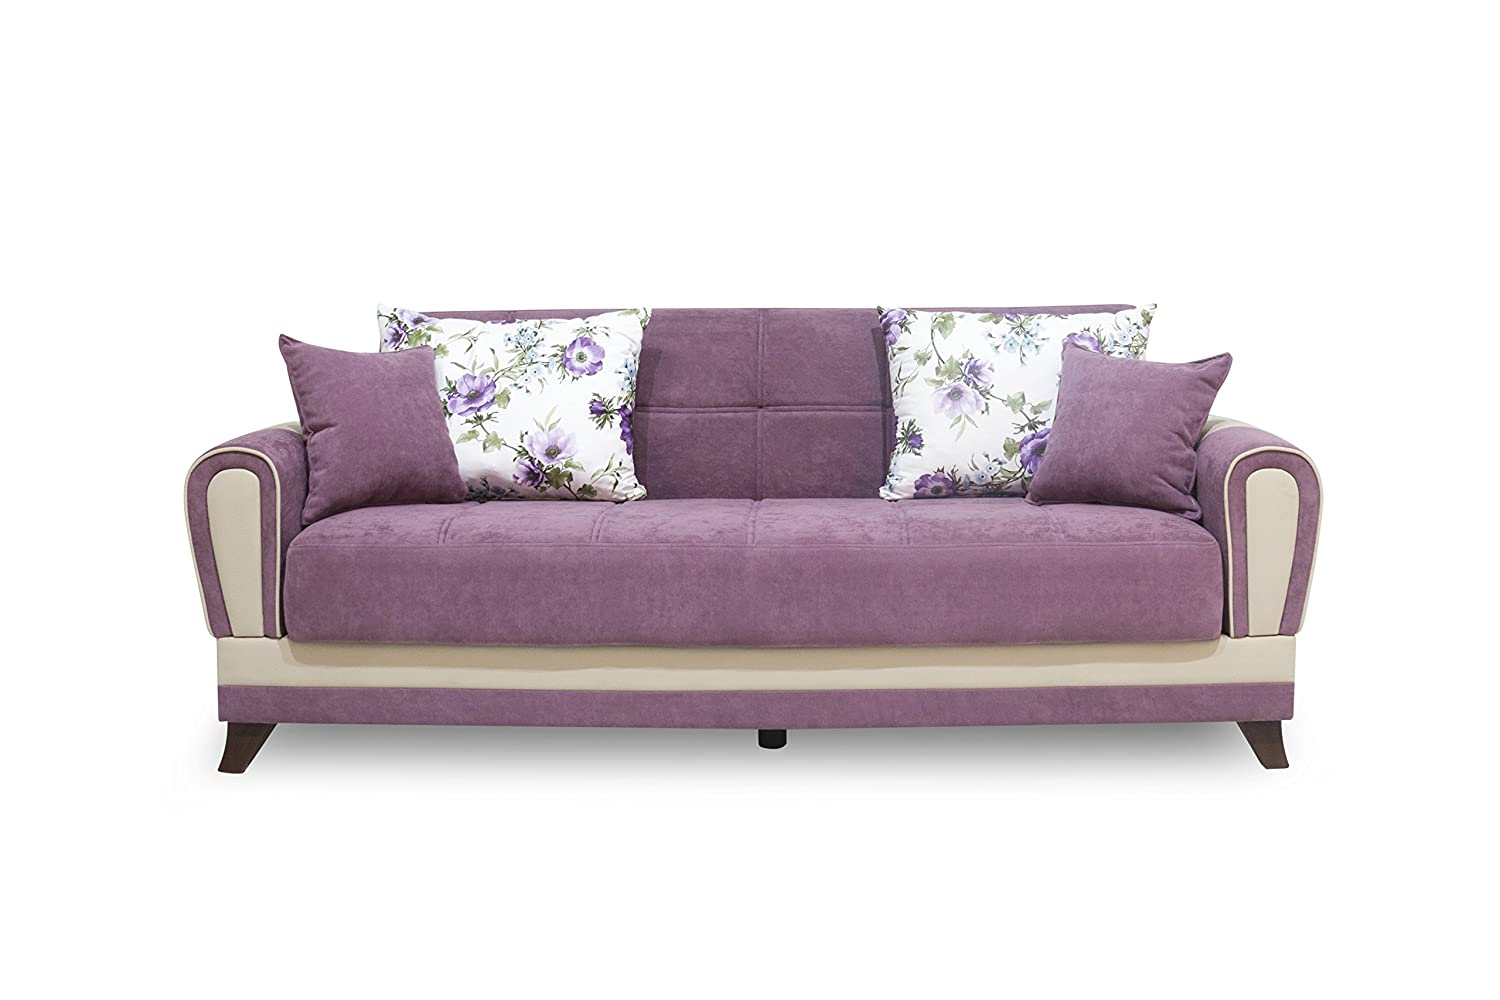 Urban living lima three seater sofa cum bed grape wine for Sofa bed amazon